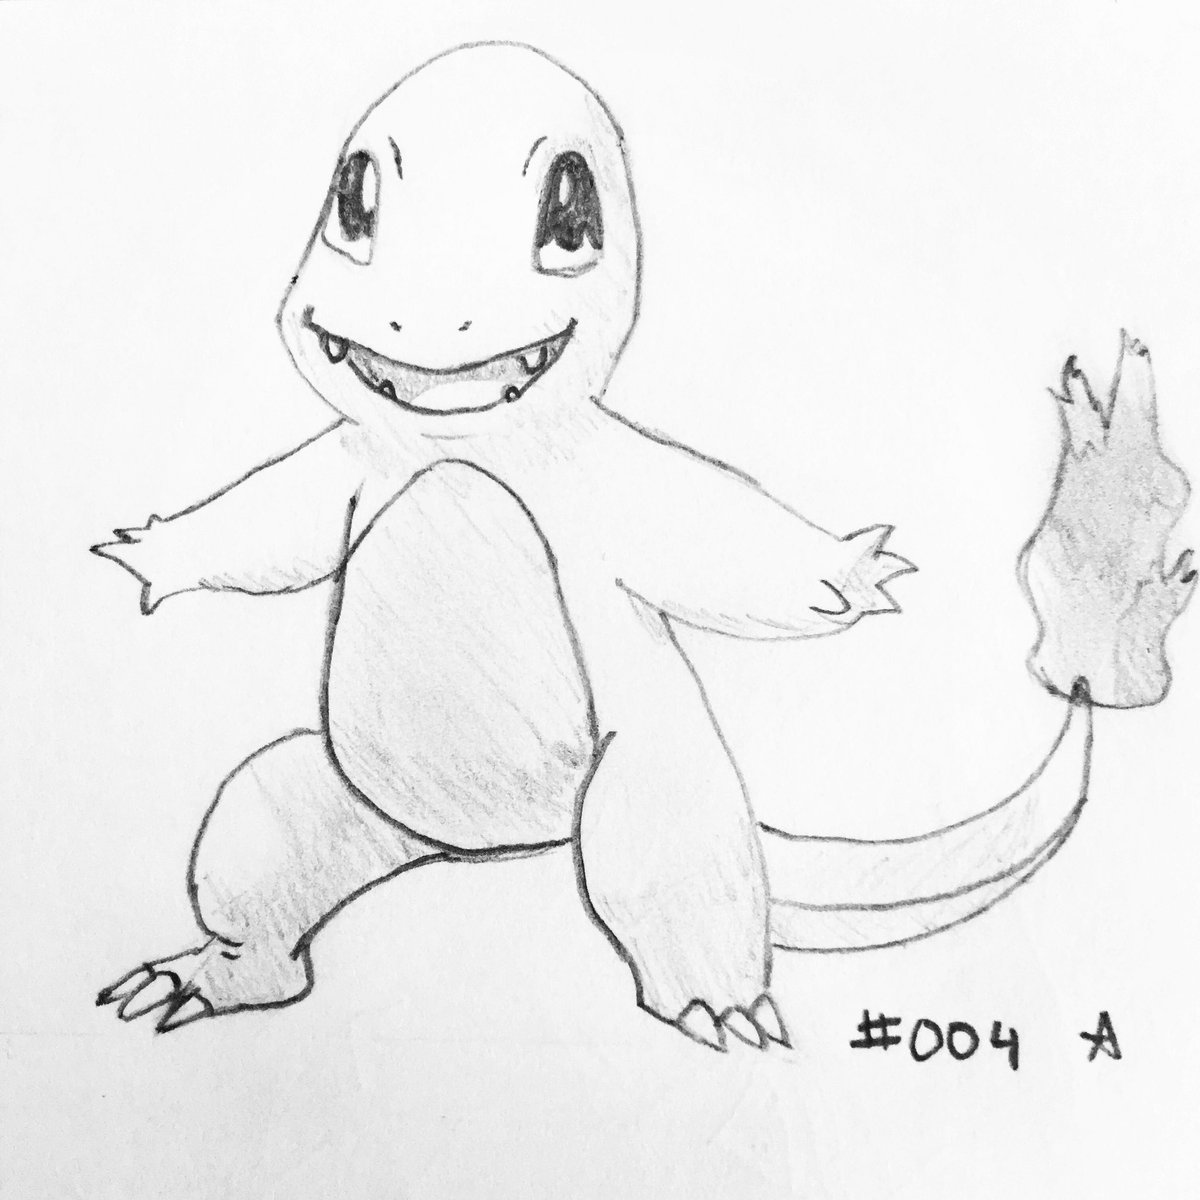 S on twitter day 004 charmander pokemon charmander